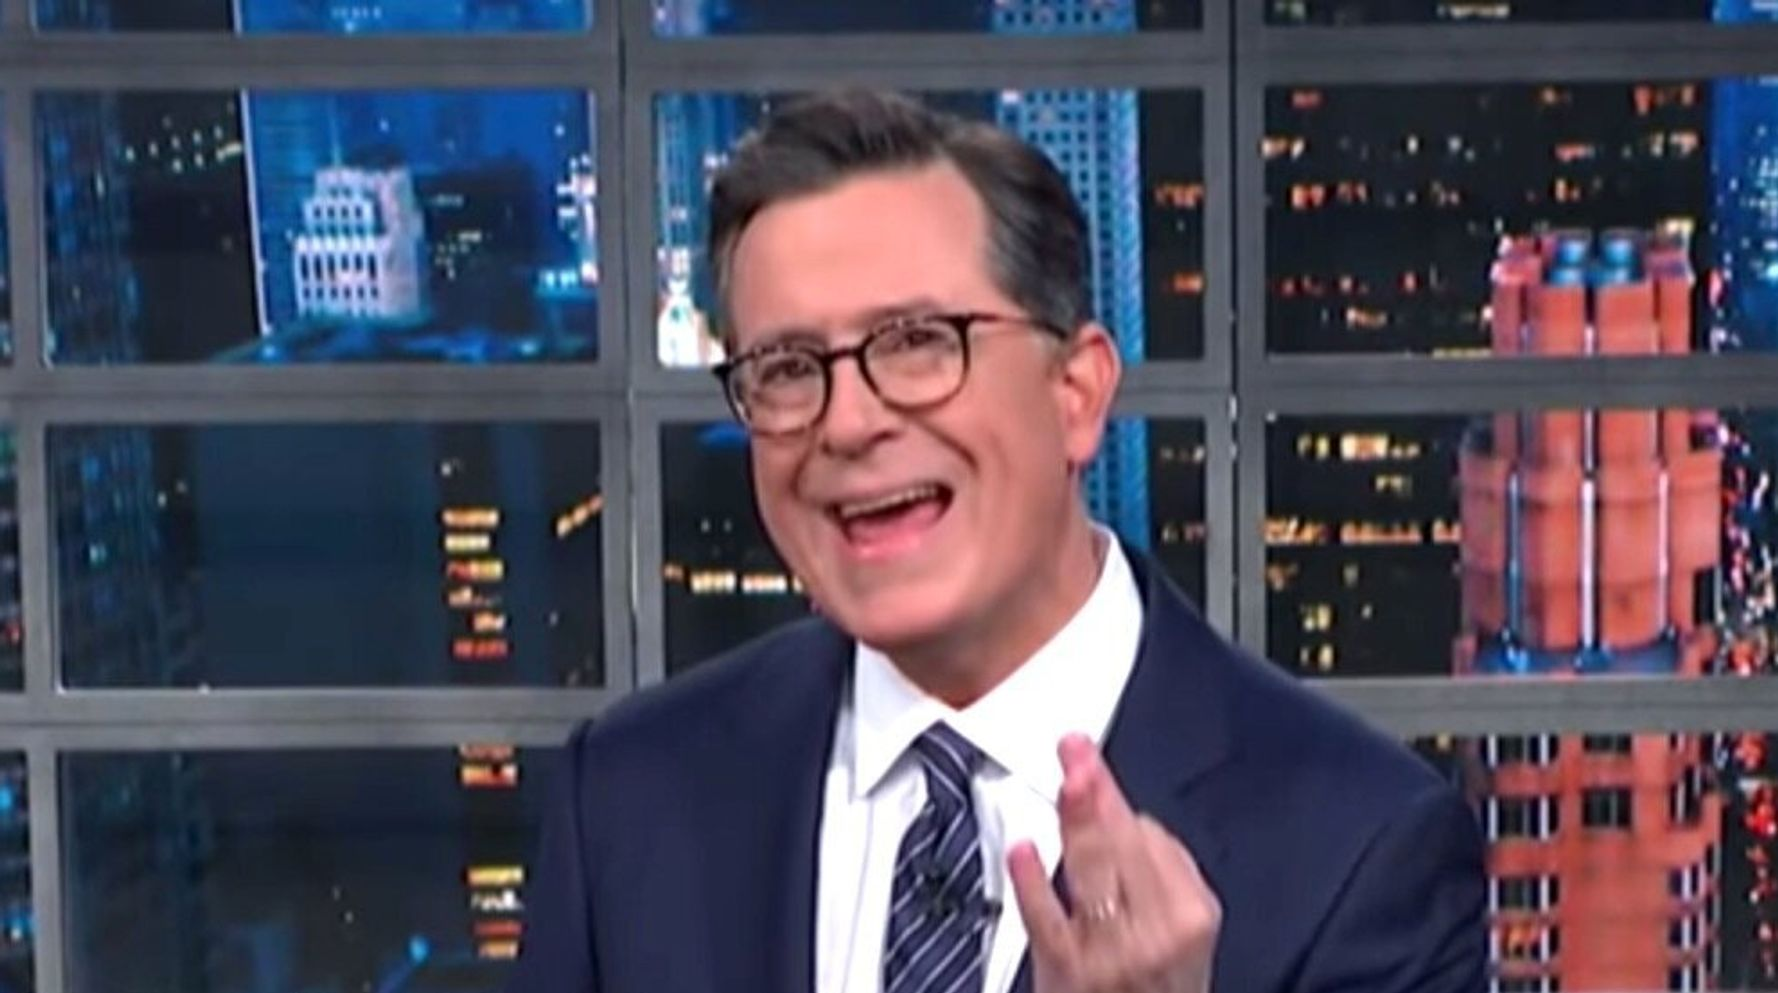 Westlake Legal Group 5e1d52872100003000af8ca4 Colbert Torches Trump Administration For Failure To Understand 1 Basic Word